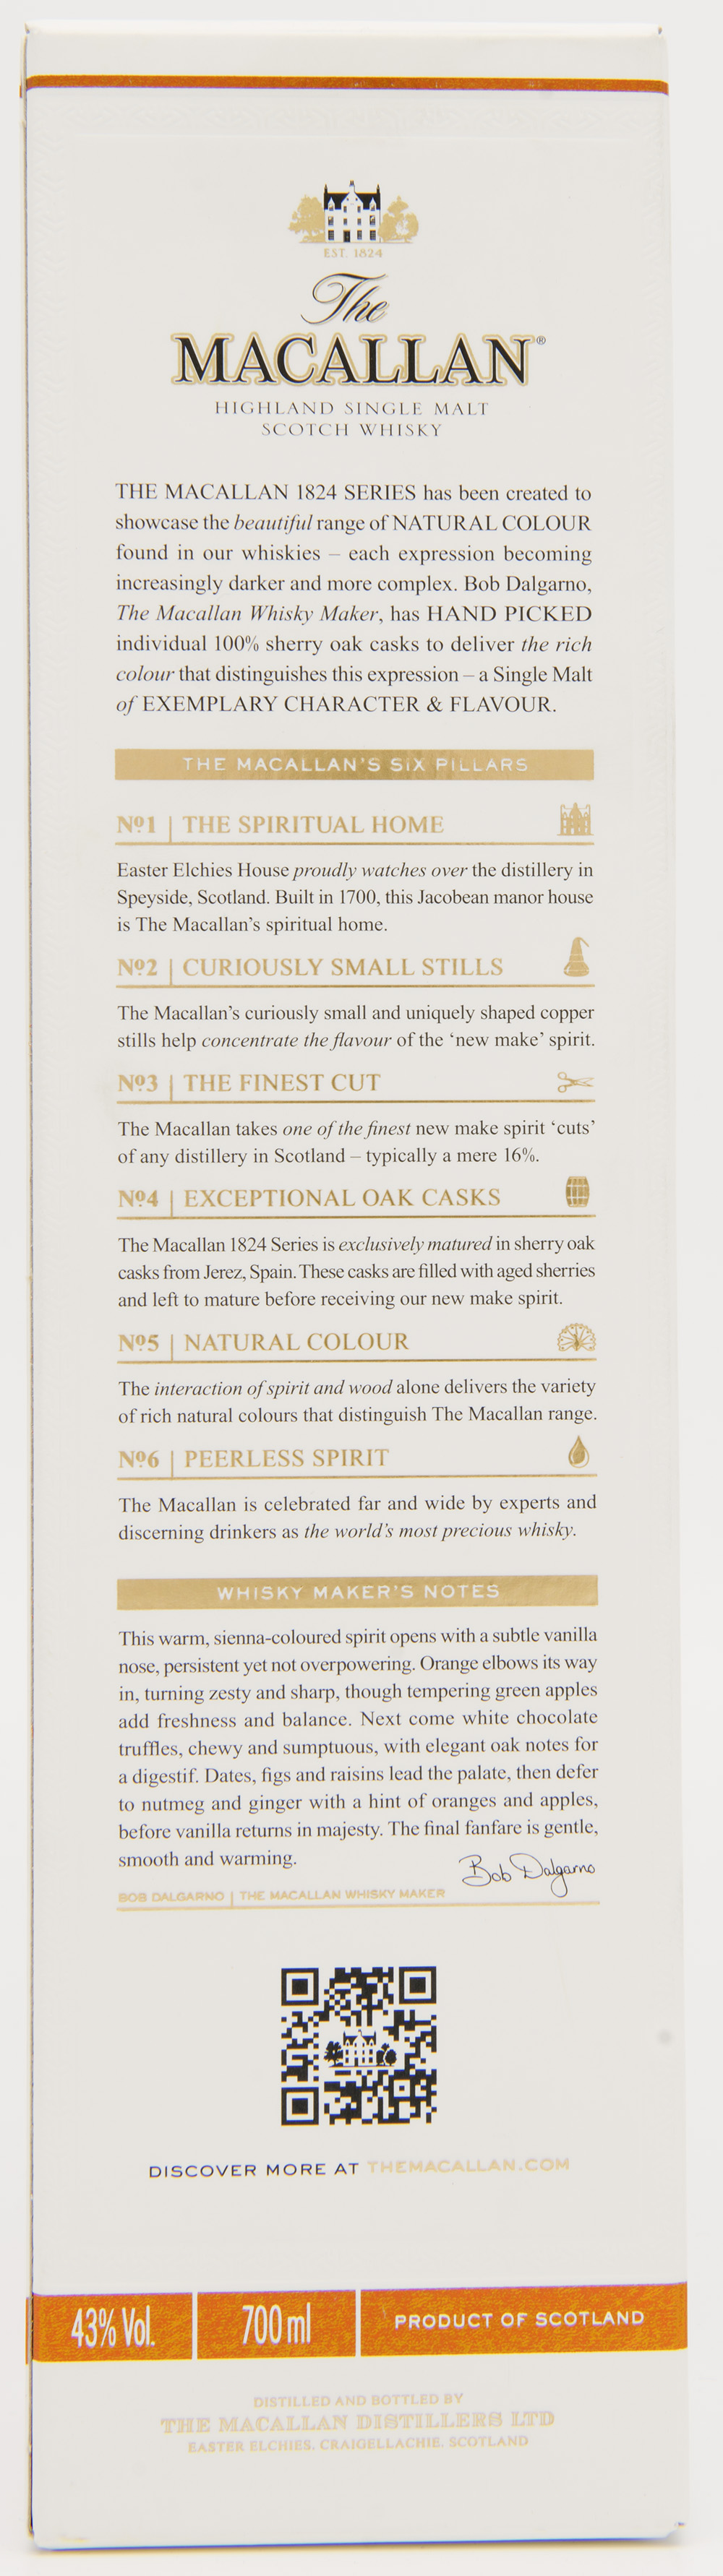 Billede: DSC_3587 The MacAllan Sienna - box back.jpg